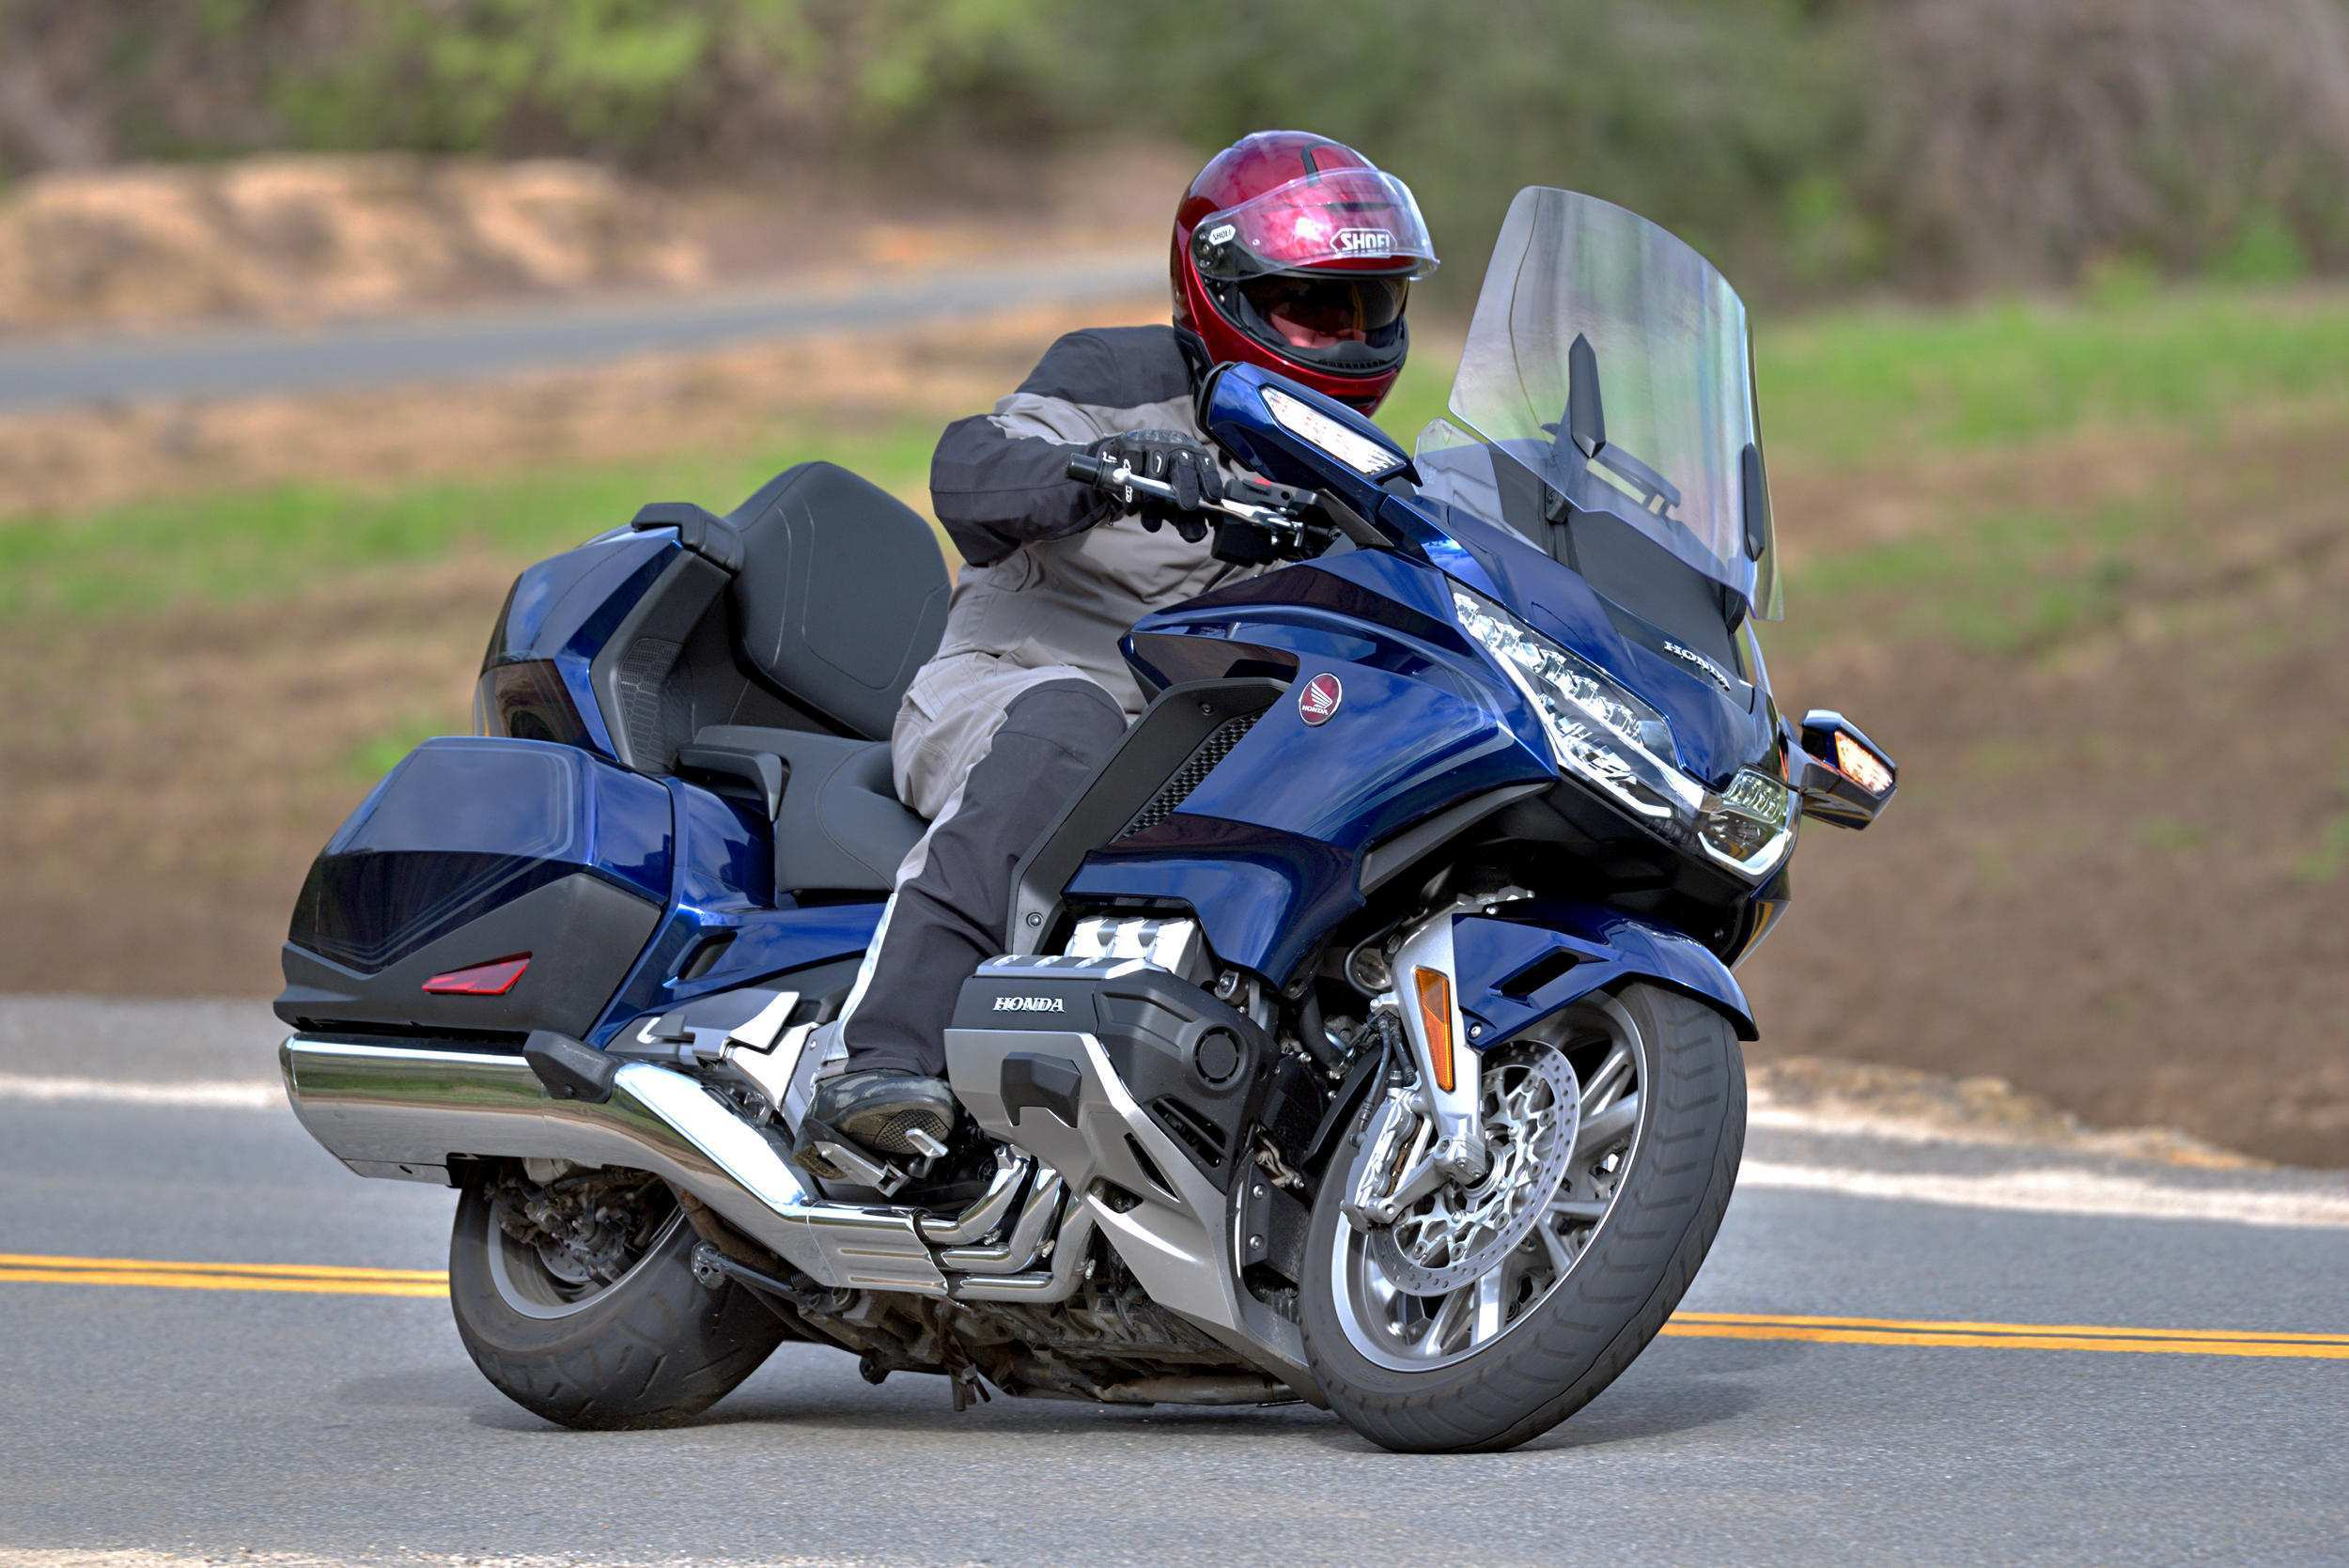 53 The Best 2020 Honda Gold Wing Performance